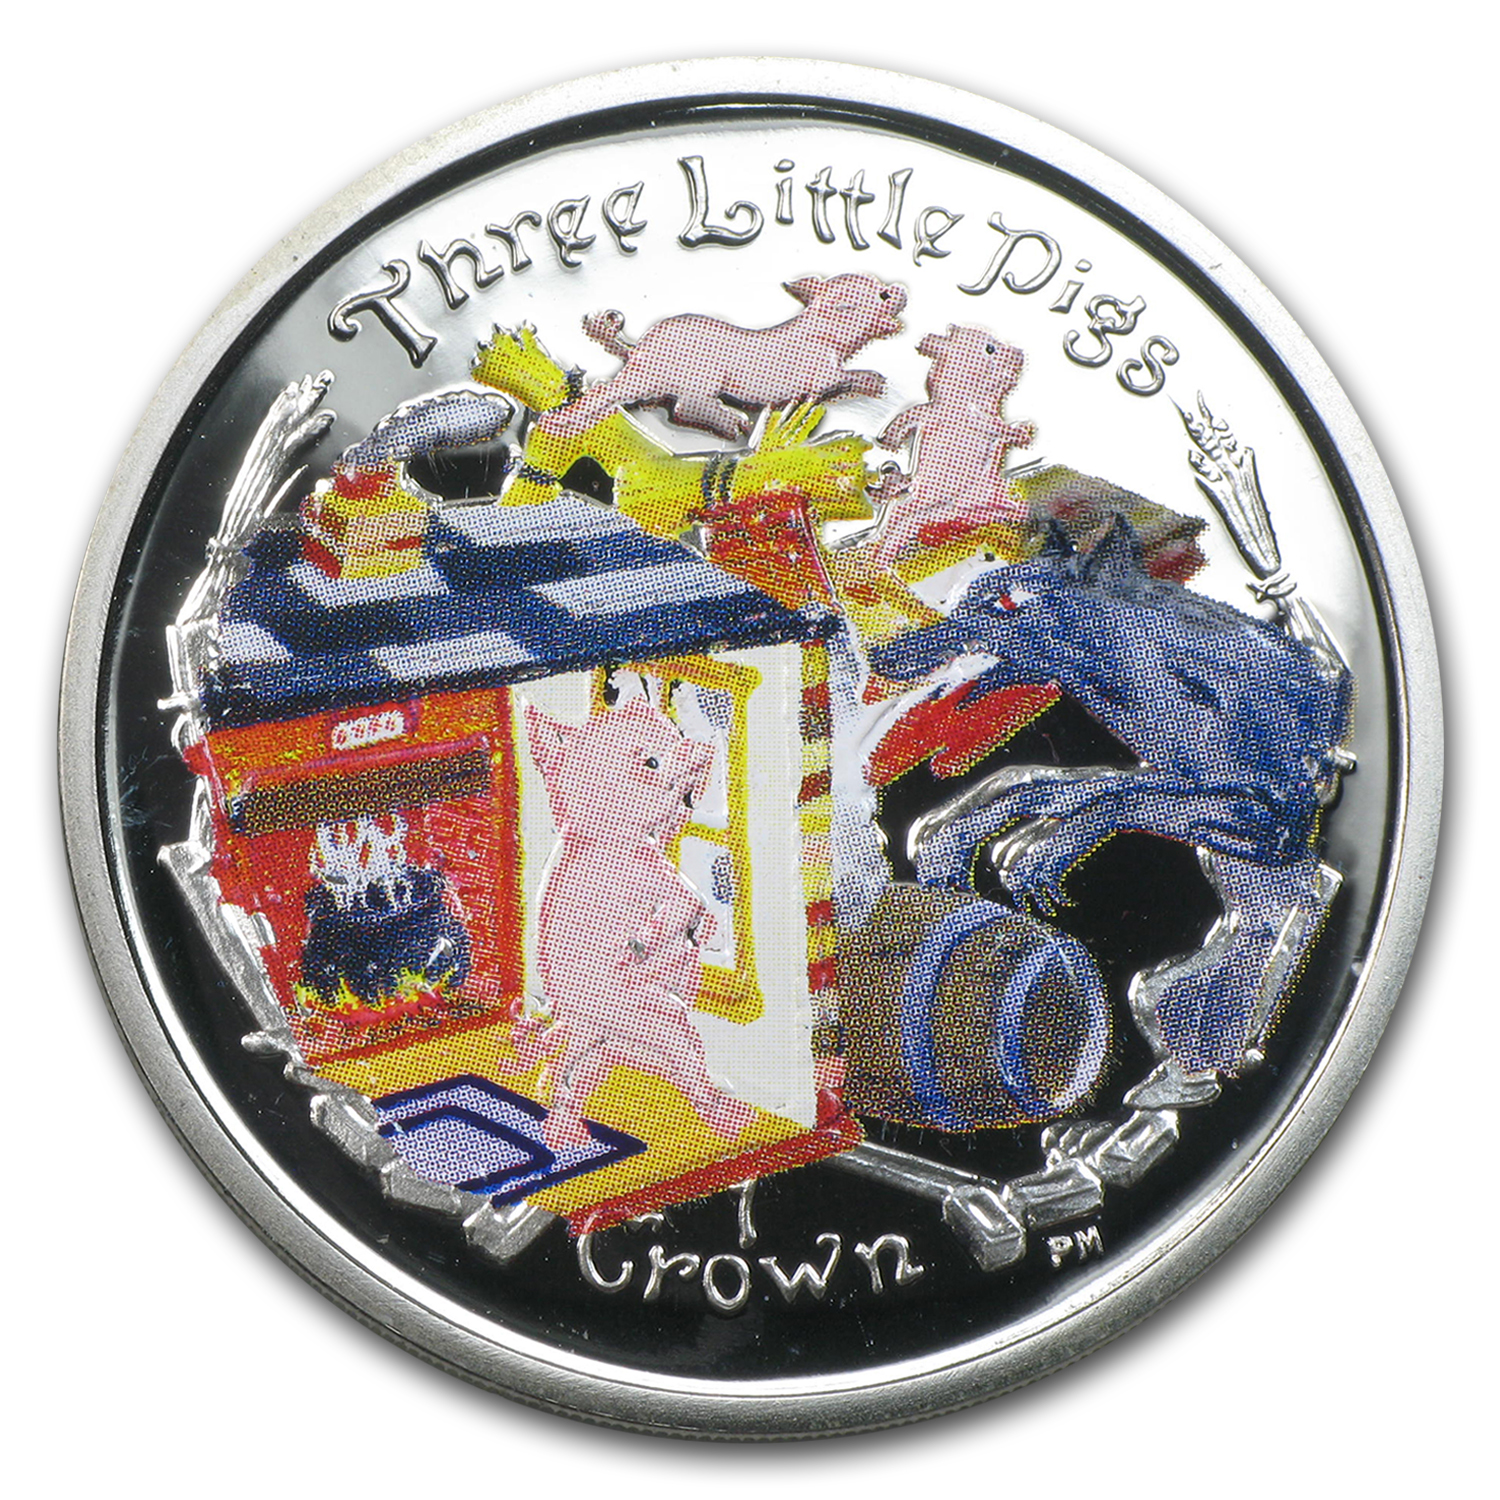 2007 Isle of Man Silver 1 Crown Three Little Pigs Proof